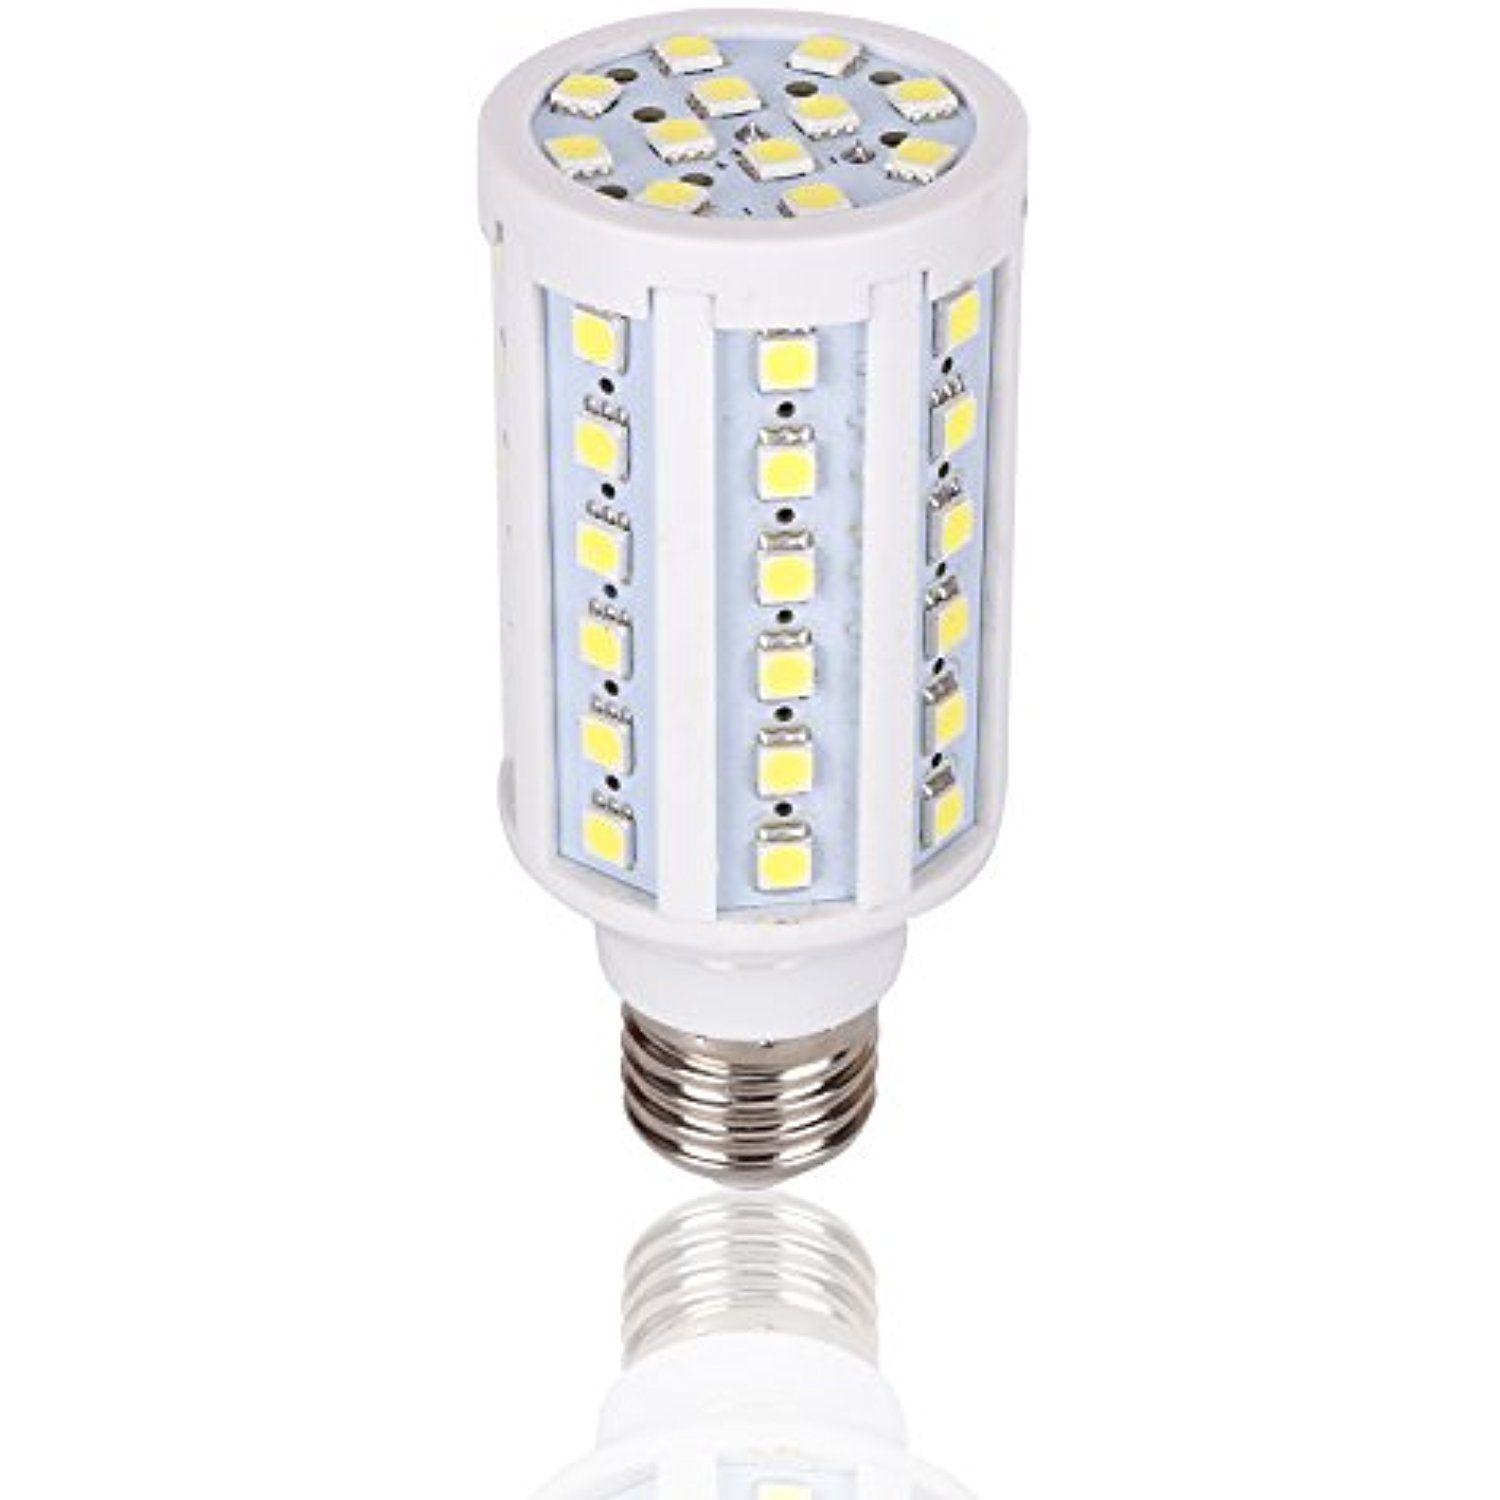 Medium Base 12 Volt Led Light Bulb Dc 12v 20v 6000k Bright White Screw E26 Camper Outdoor Rv Ni Lighting Ceiling Fans Solar Landscape Lighting Led Light Bulb